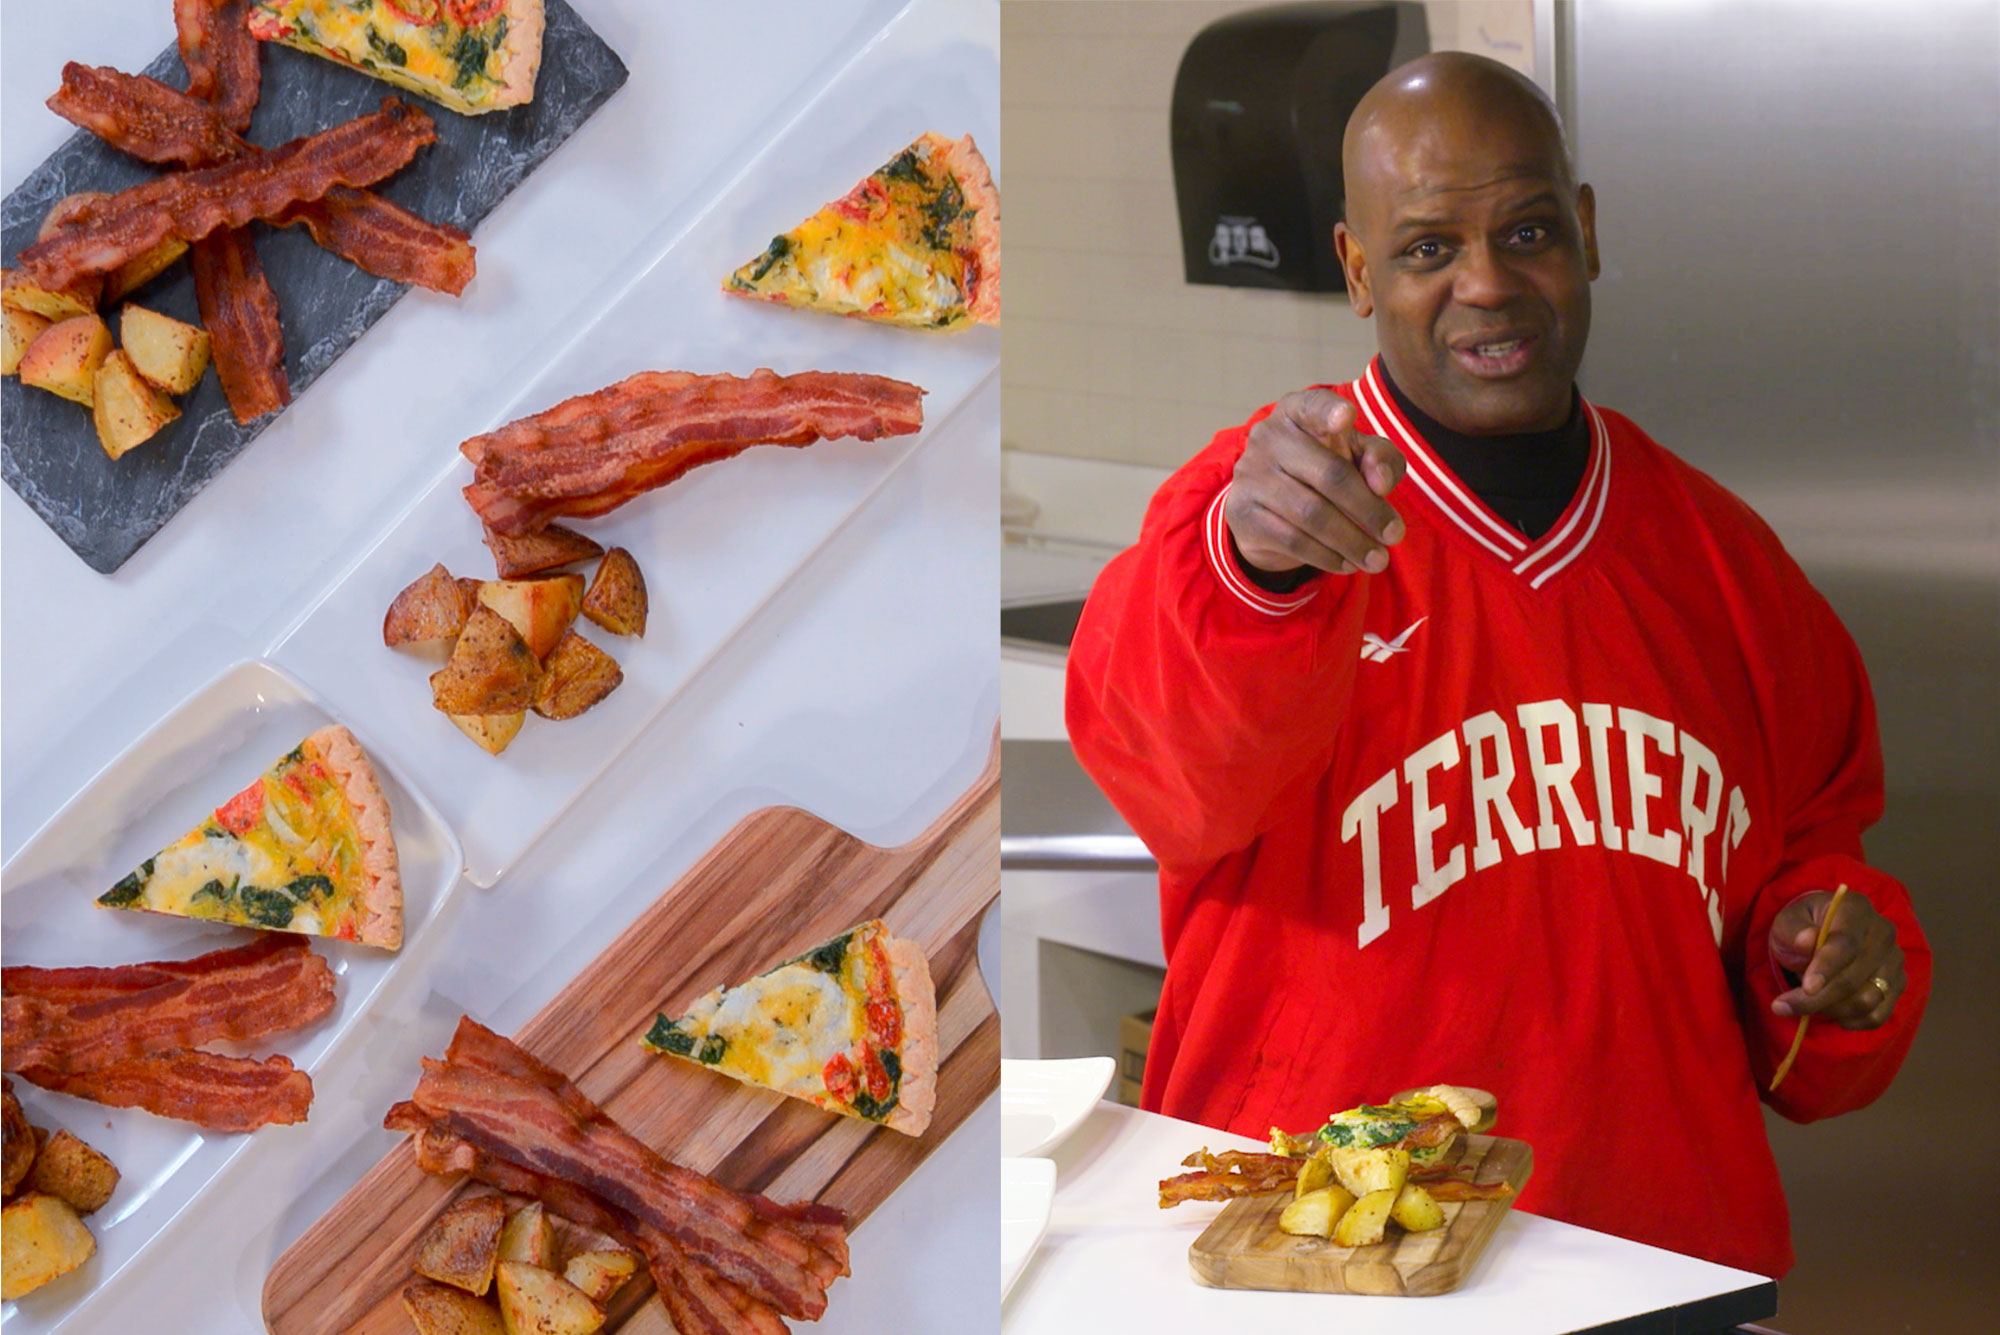 "Composite image: on the left, an aerial view of plates of roasted tomato and leek tart, salt and pepper Yukon Gold potatoes, and applewood smoked bacon, made by BU chef and campus culinary director Christopher Bee; on the right, Kenneth Elmore, Associate provost & dean of students is seen in a red jacket with ""Terriers"" in white, pointing towards the camera with a smile on his face. A plate of food is set before him."